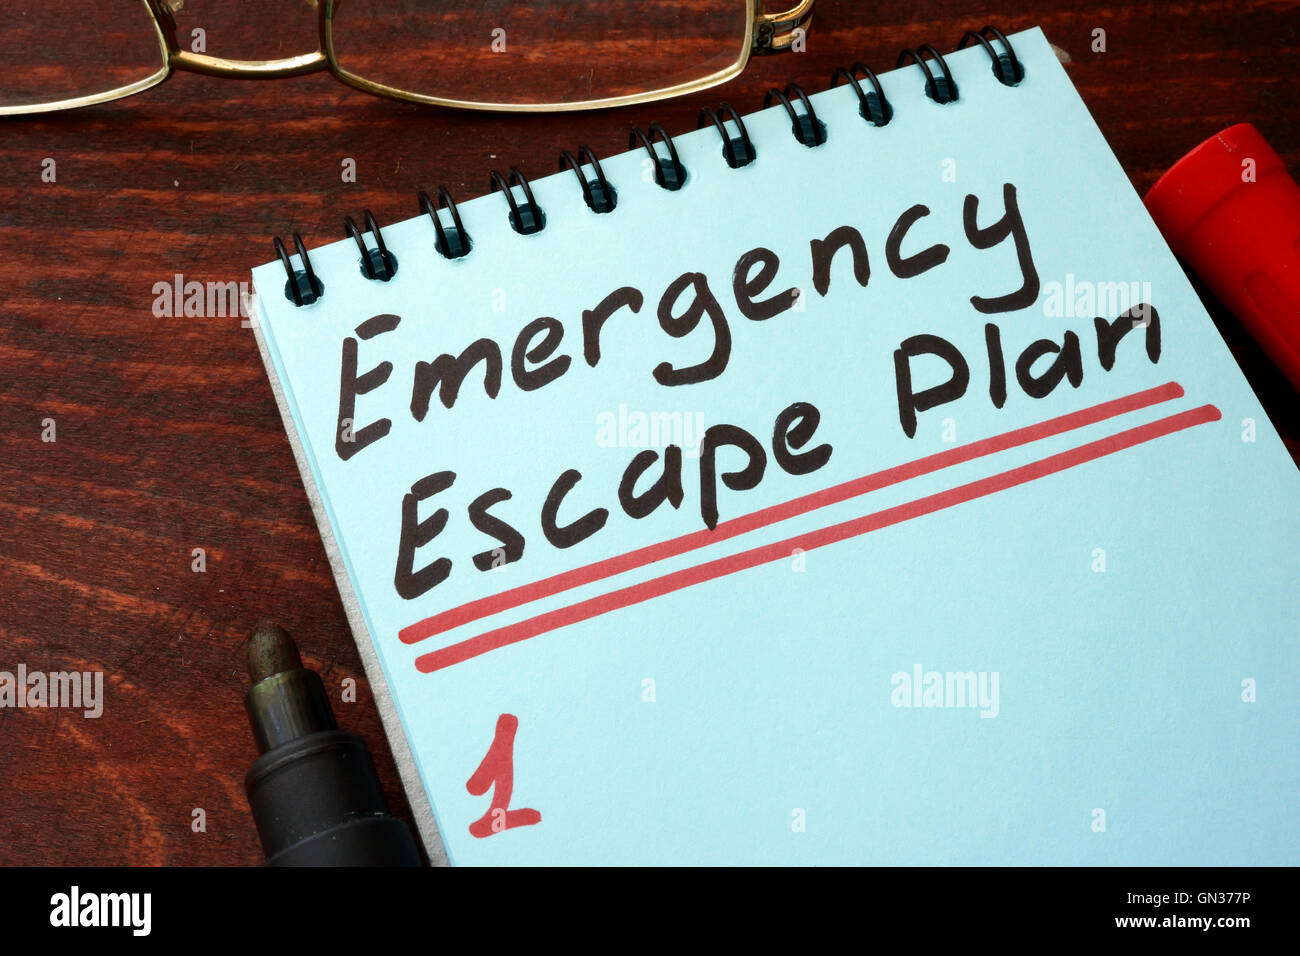 Emergency Escape Plan written on a notepad with marker. - Stock Image